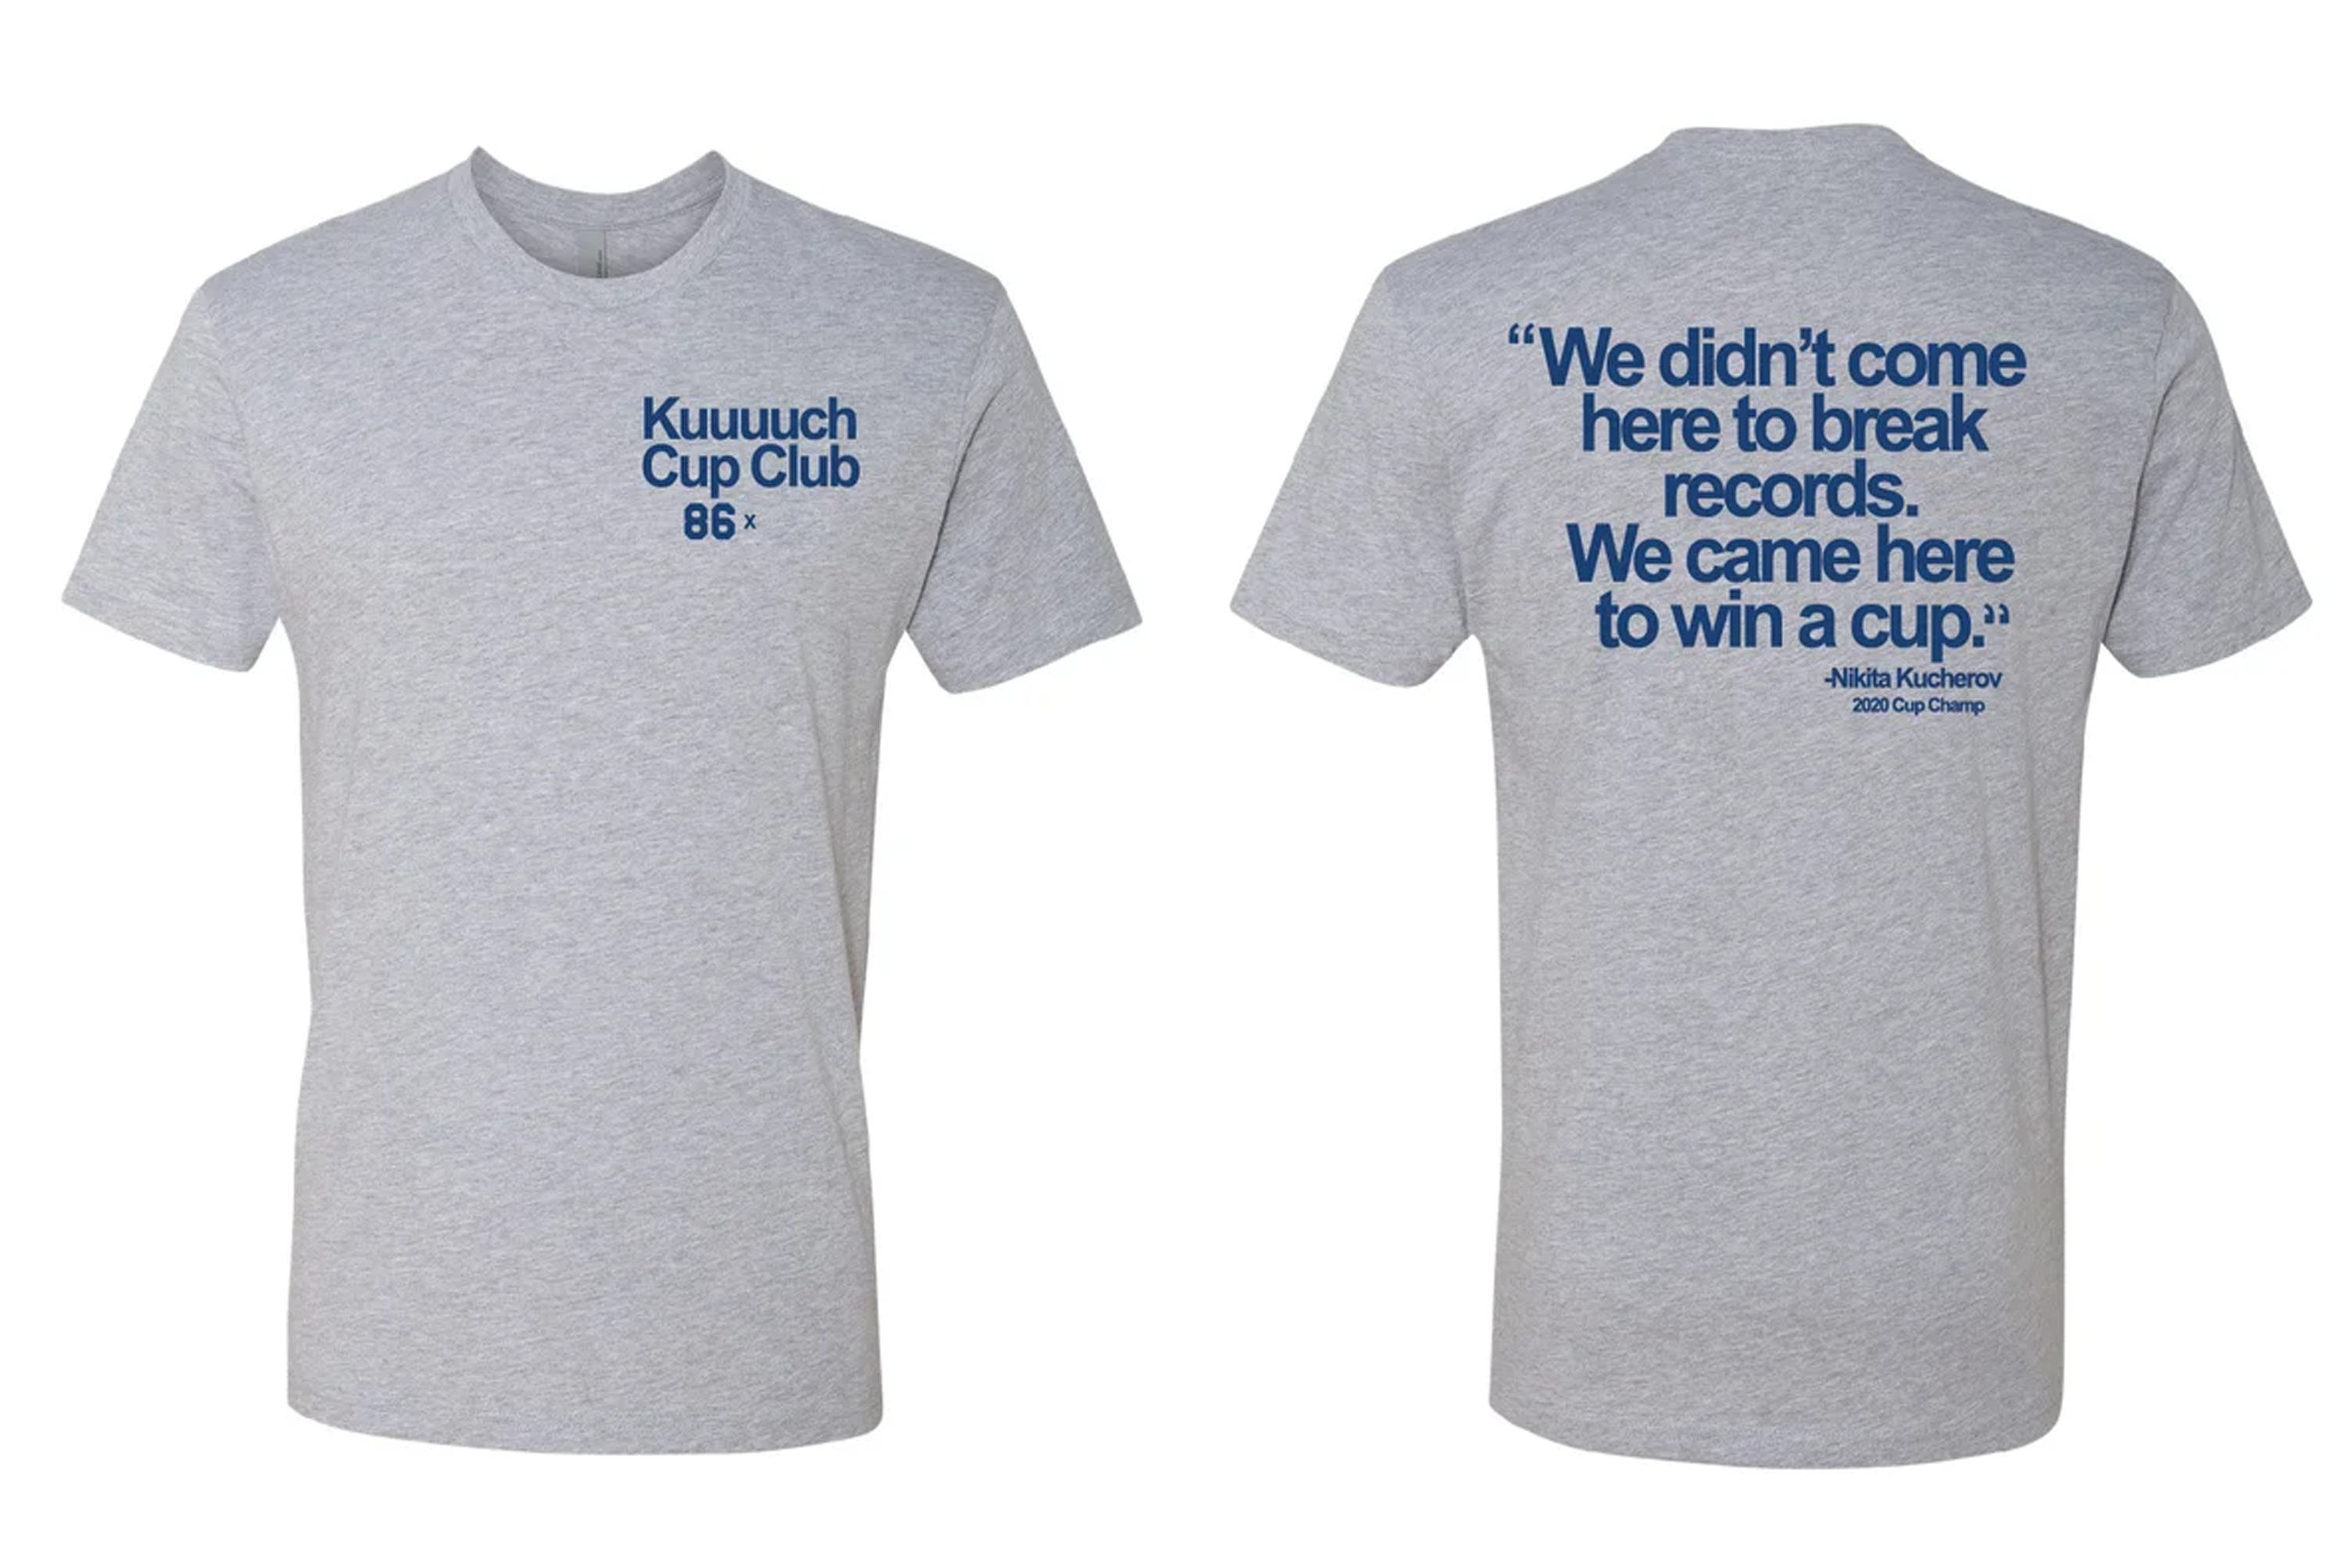 KUUUUUCH QUOTE CUP CLUB T-SHIRT